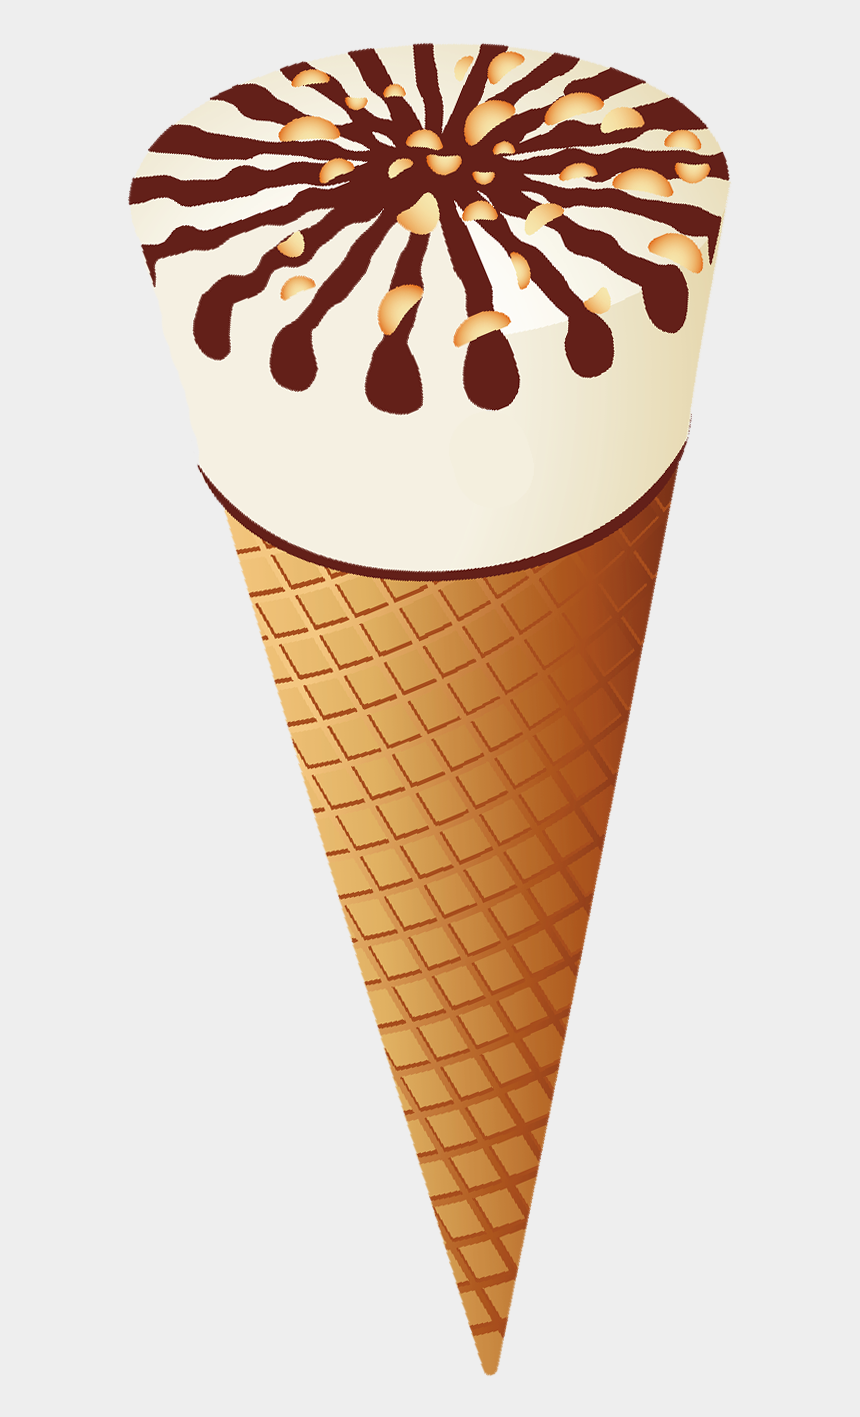 popsicle clipart, Cartoons - Ice Cream Background, Magdalena, Popsicles, Ice Cream - Cone Ice Cream Png